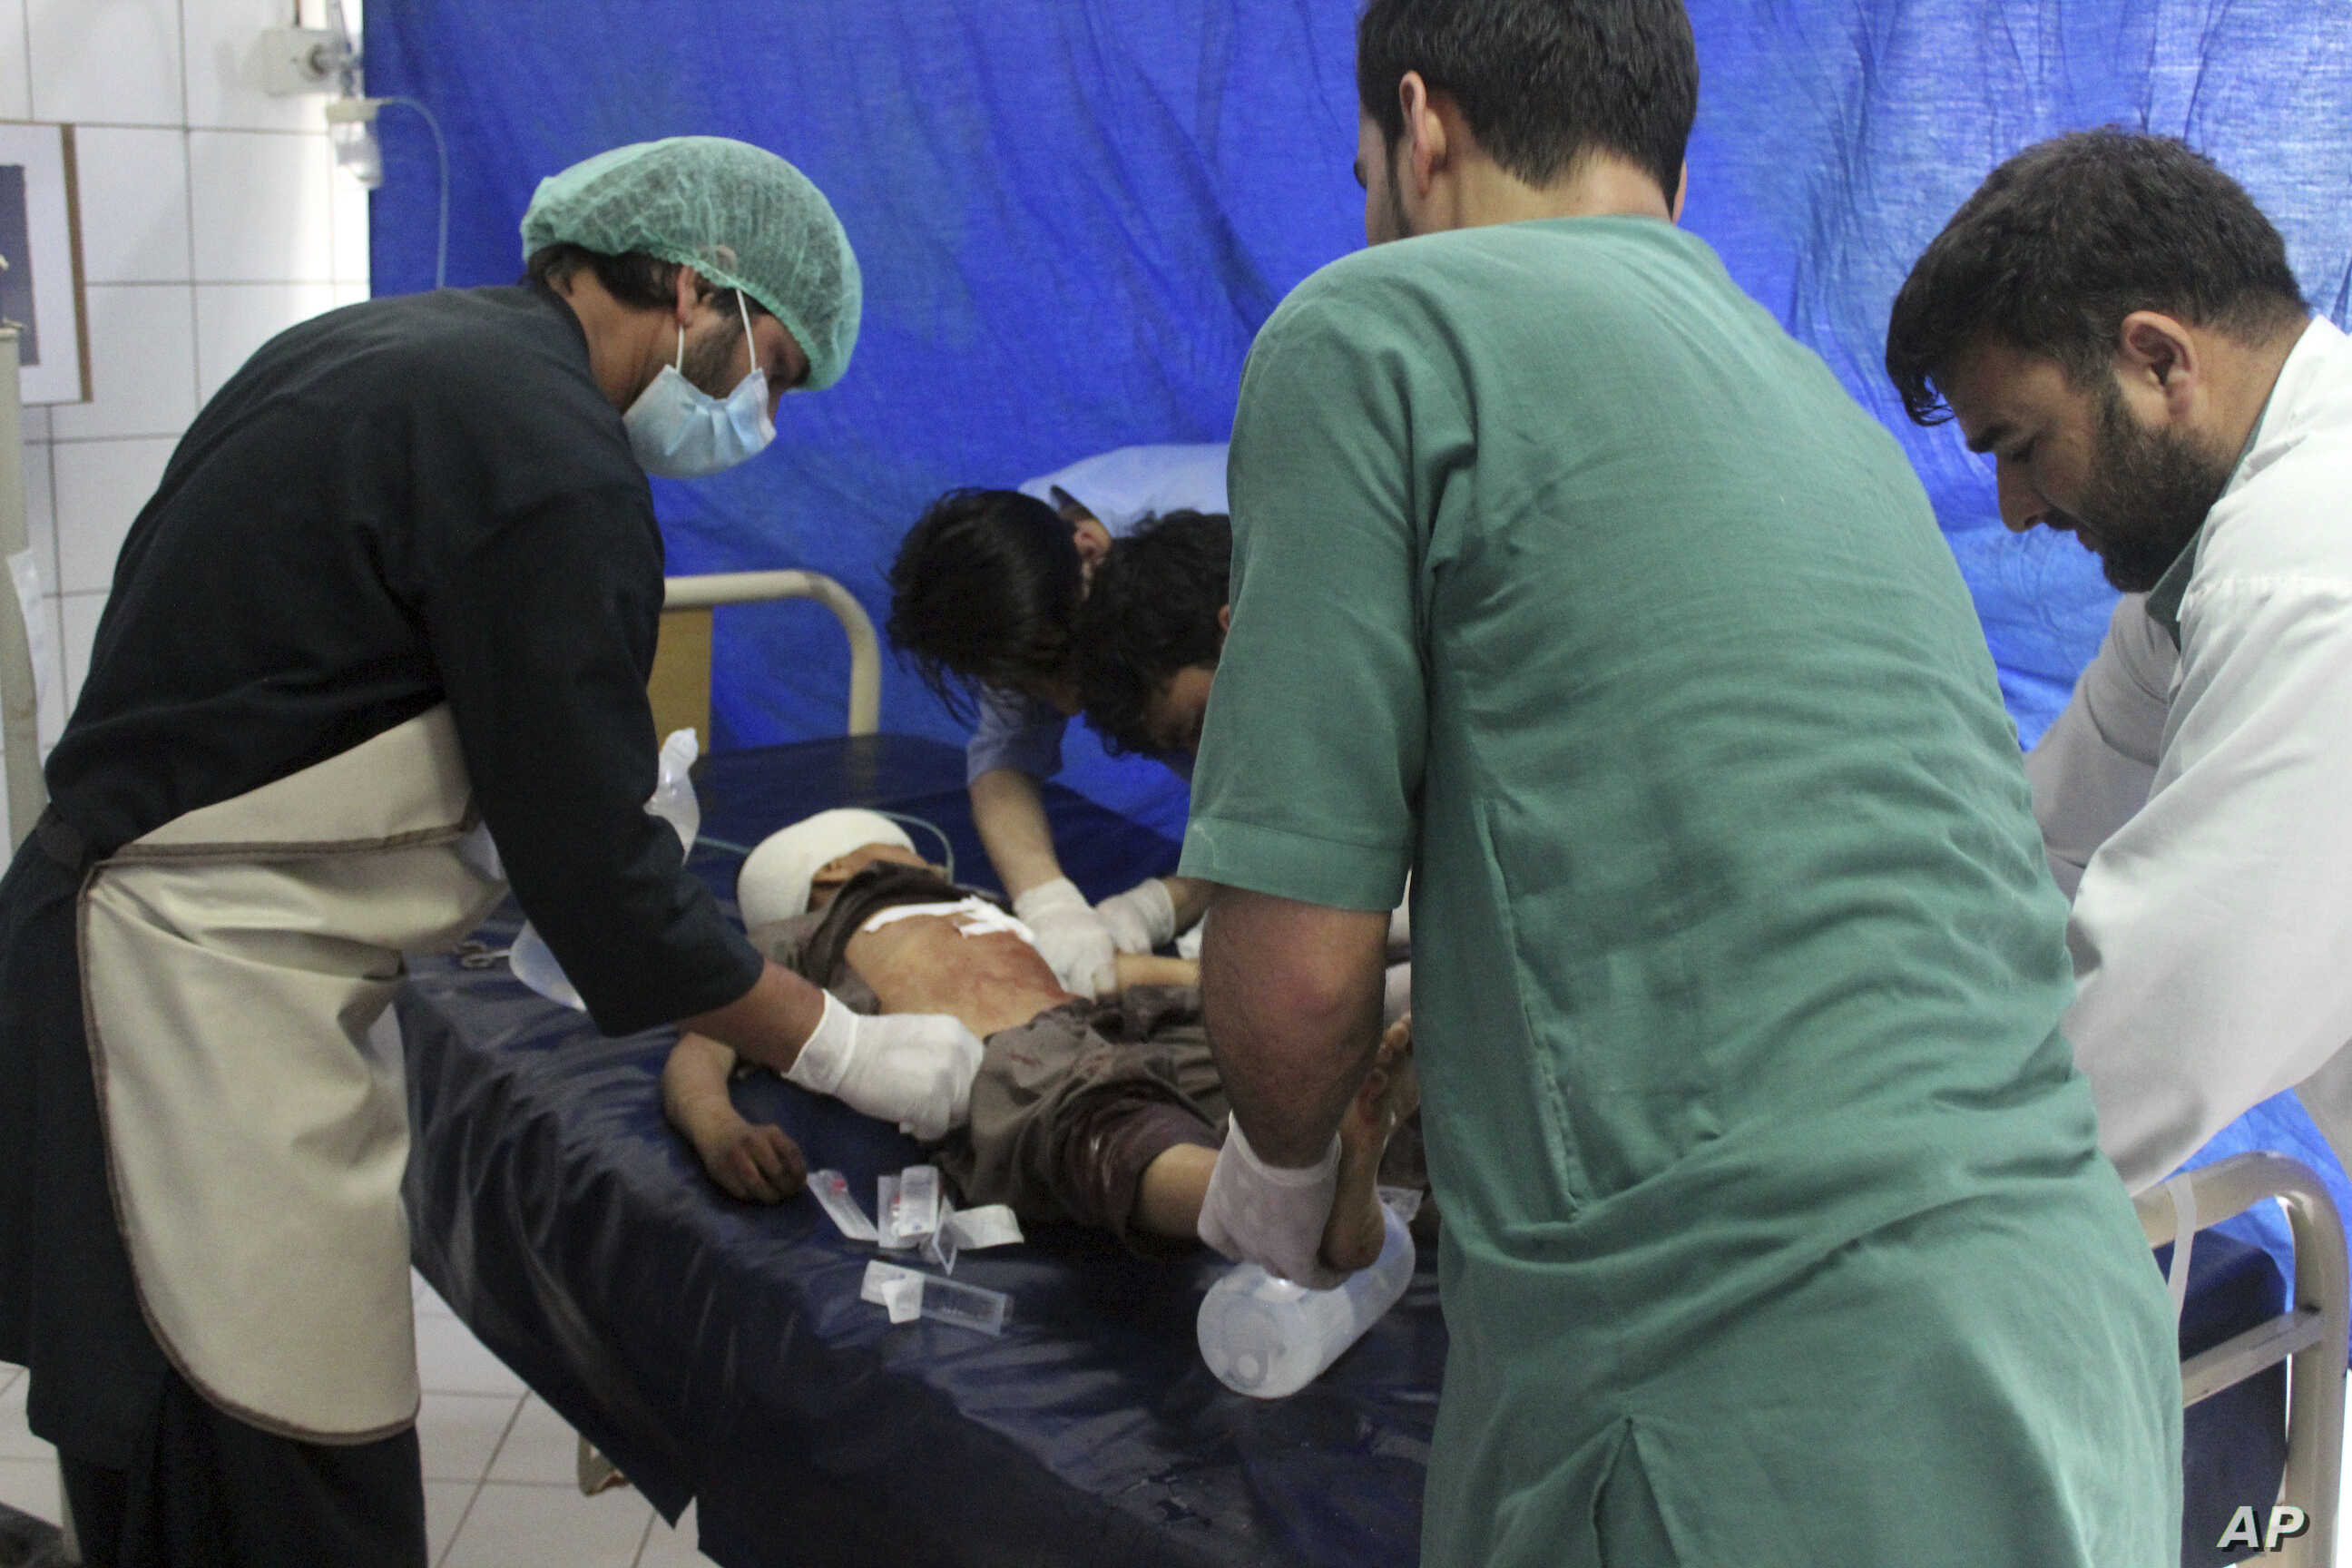 An injured boy receives treatment at a hospital after a clash between Taliban and security forces in Kunduz province,  Afghanistan, April 13, 2019.